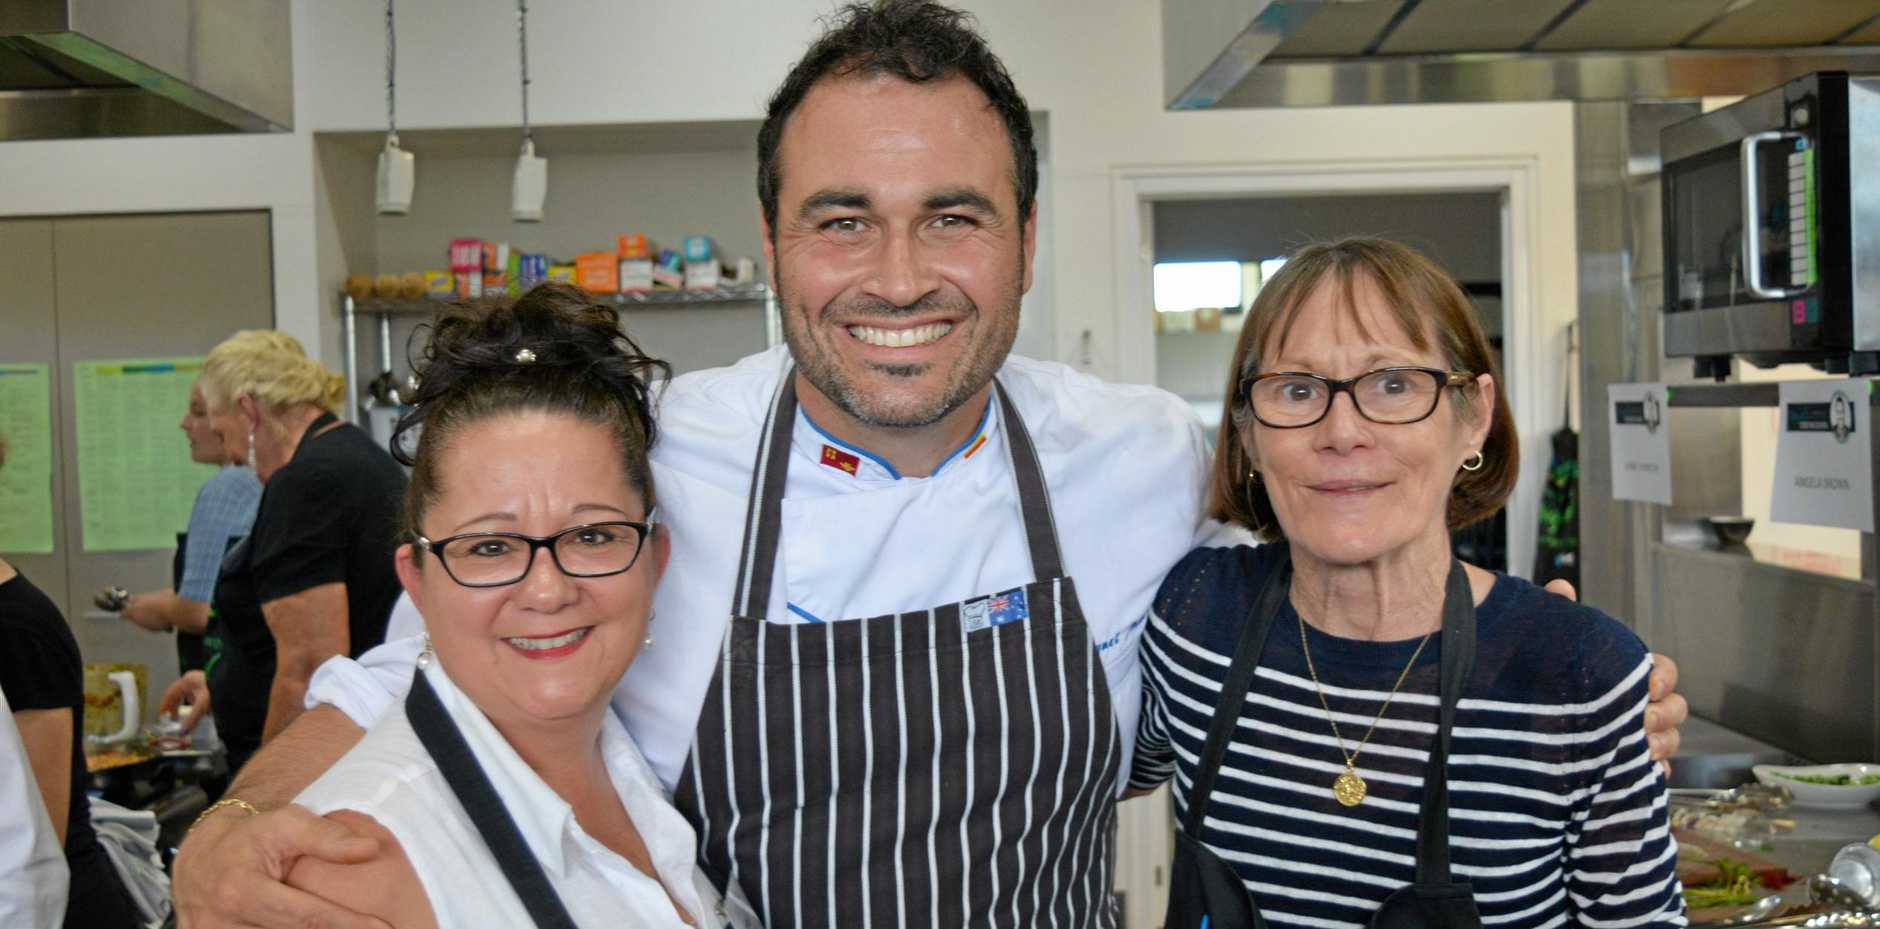 IN GOOD HANDS: Kerri Beasley, Miguel Maestre and Angela Brown at Miguel's Cooking School event held at Faith Lutheran College, Plainland.